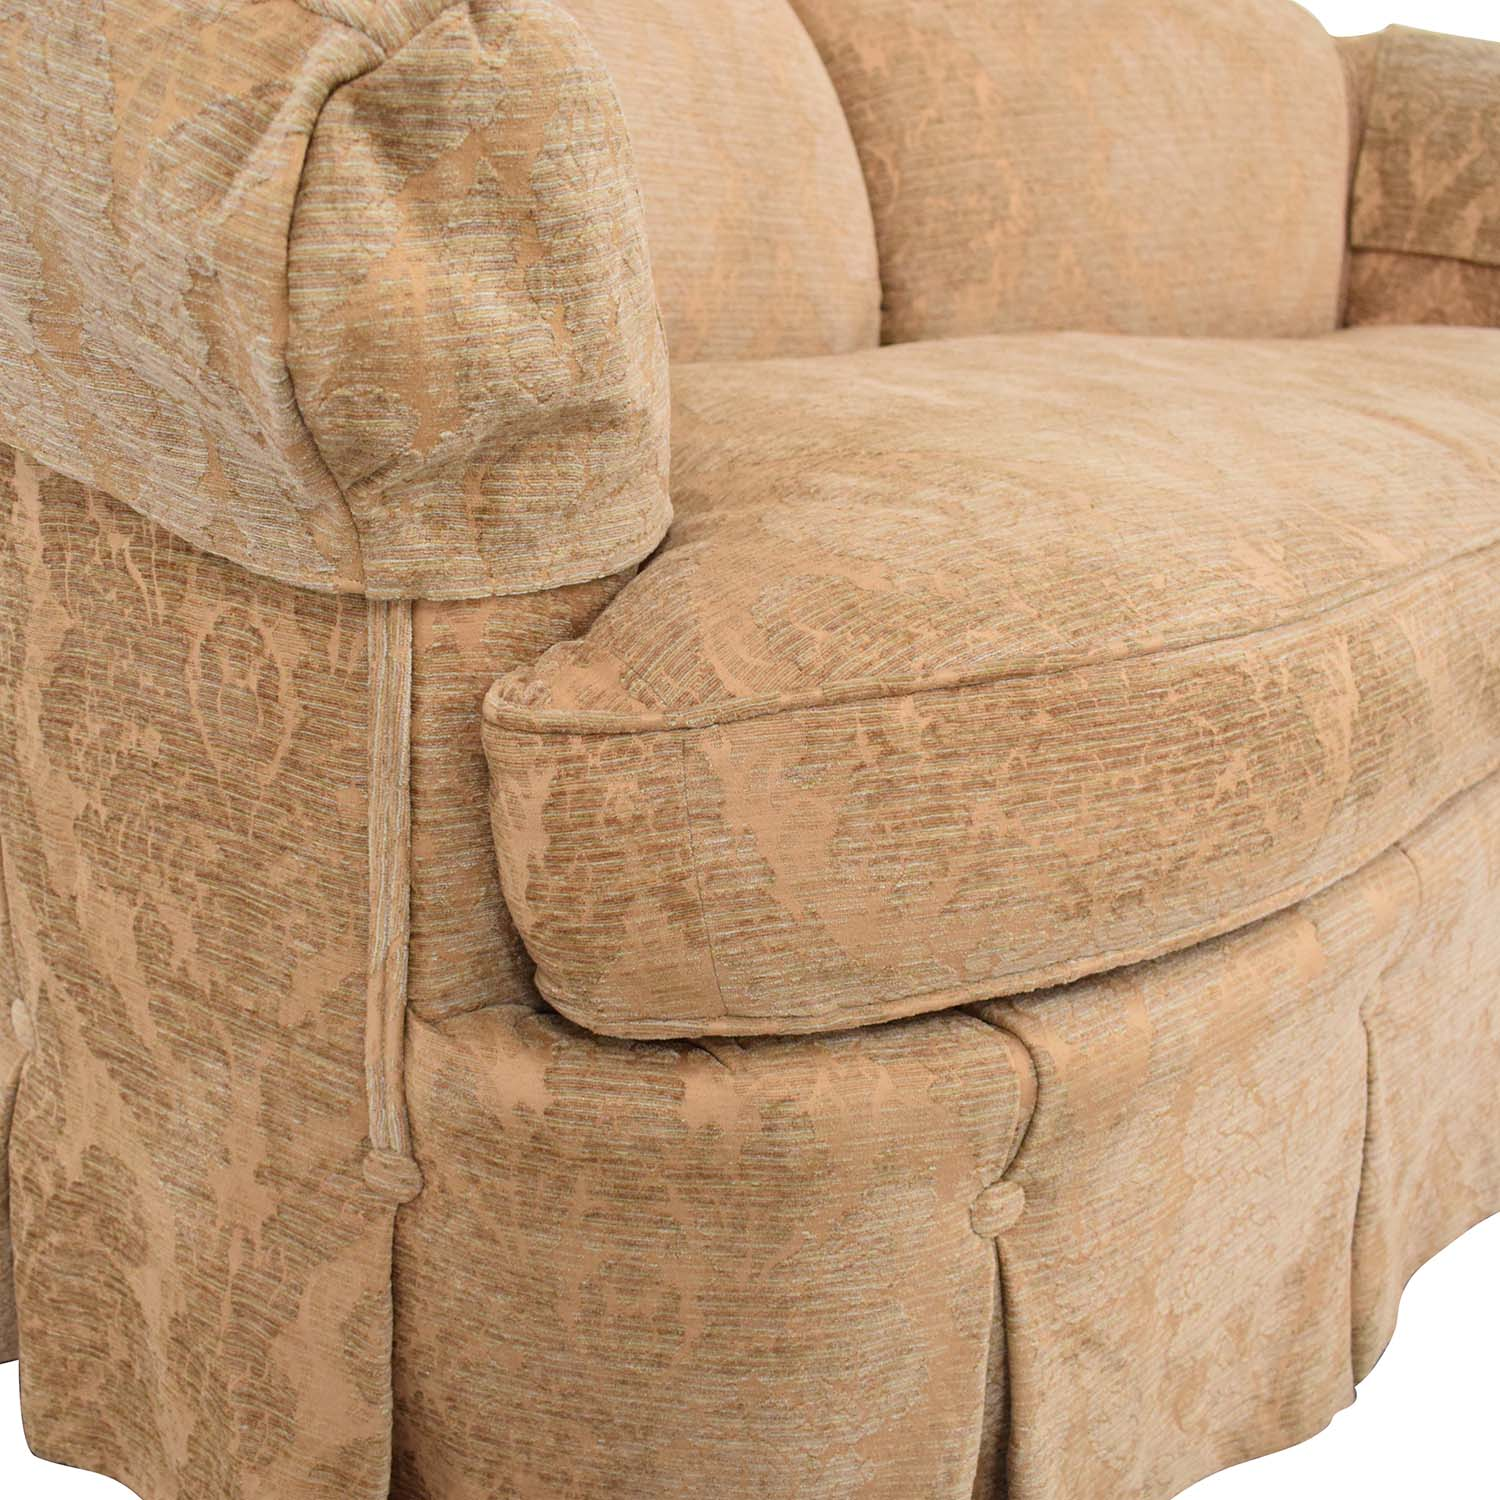 Kravet Kravet Slipcovered Loveseat gold